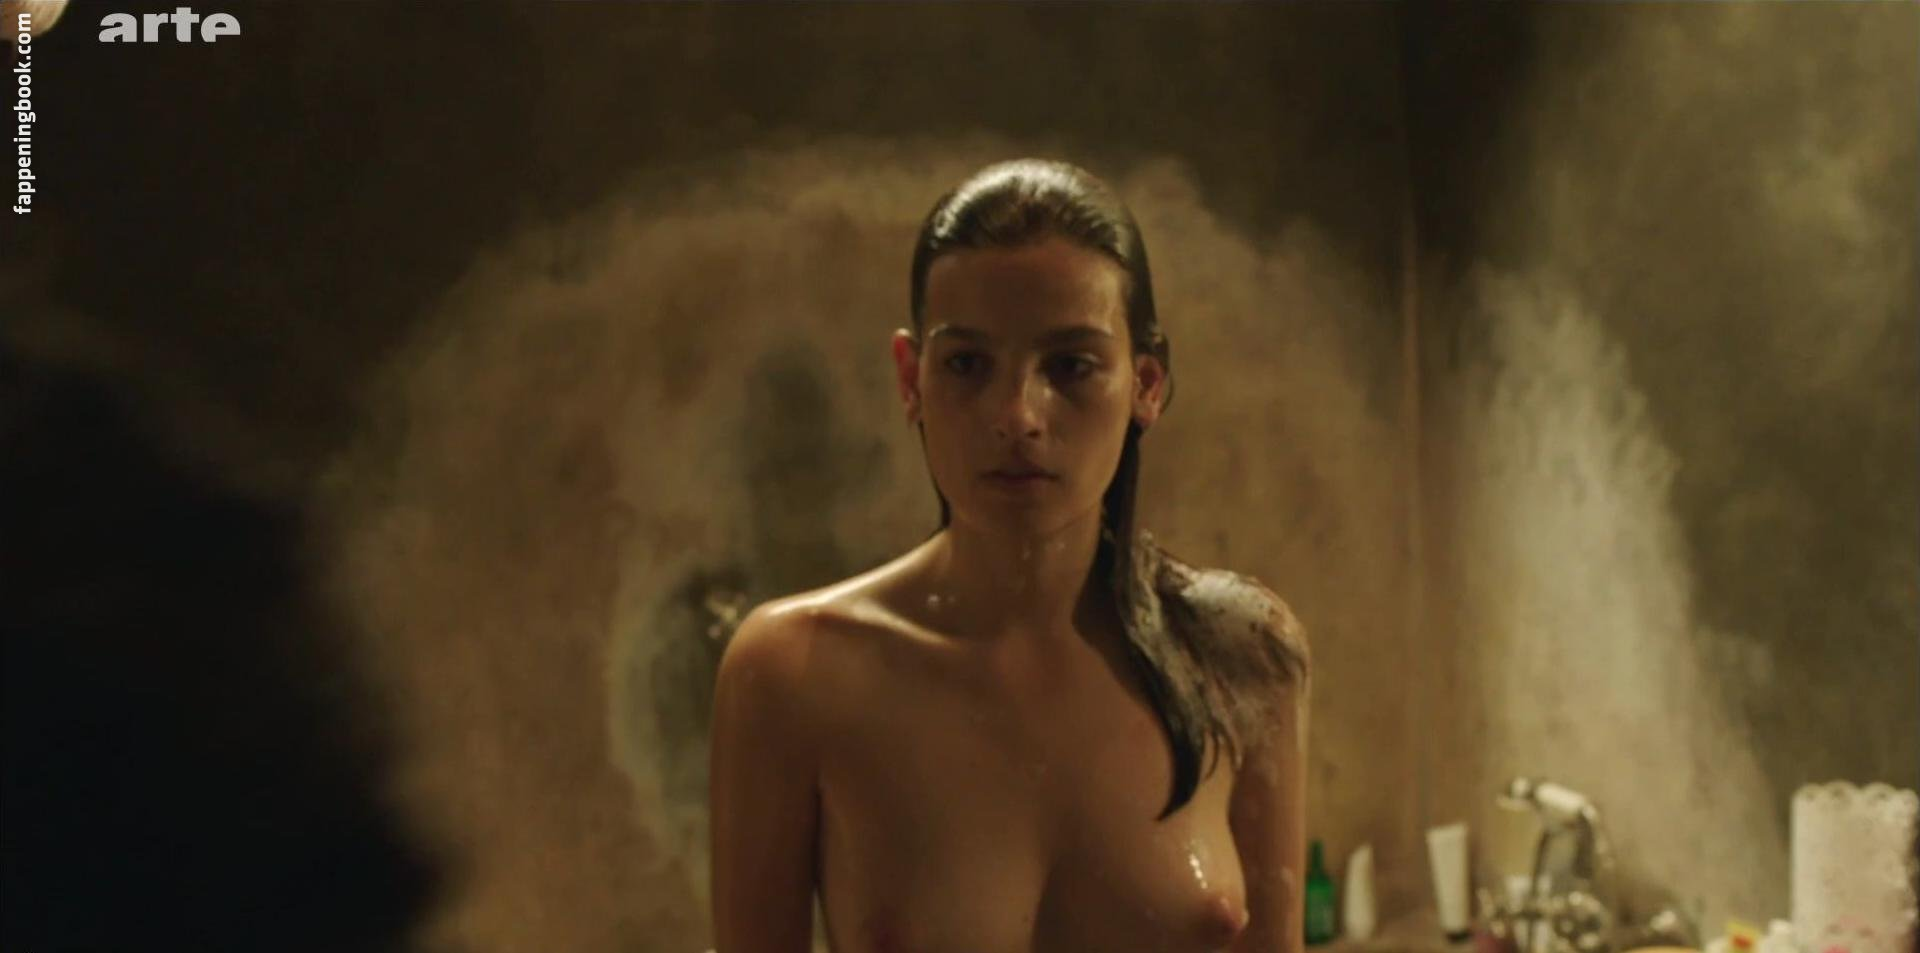 Alma Naked alma jodorowsky nude, sexy, the fappening, uncensored